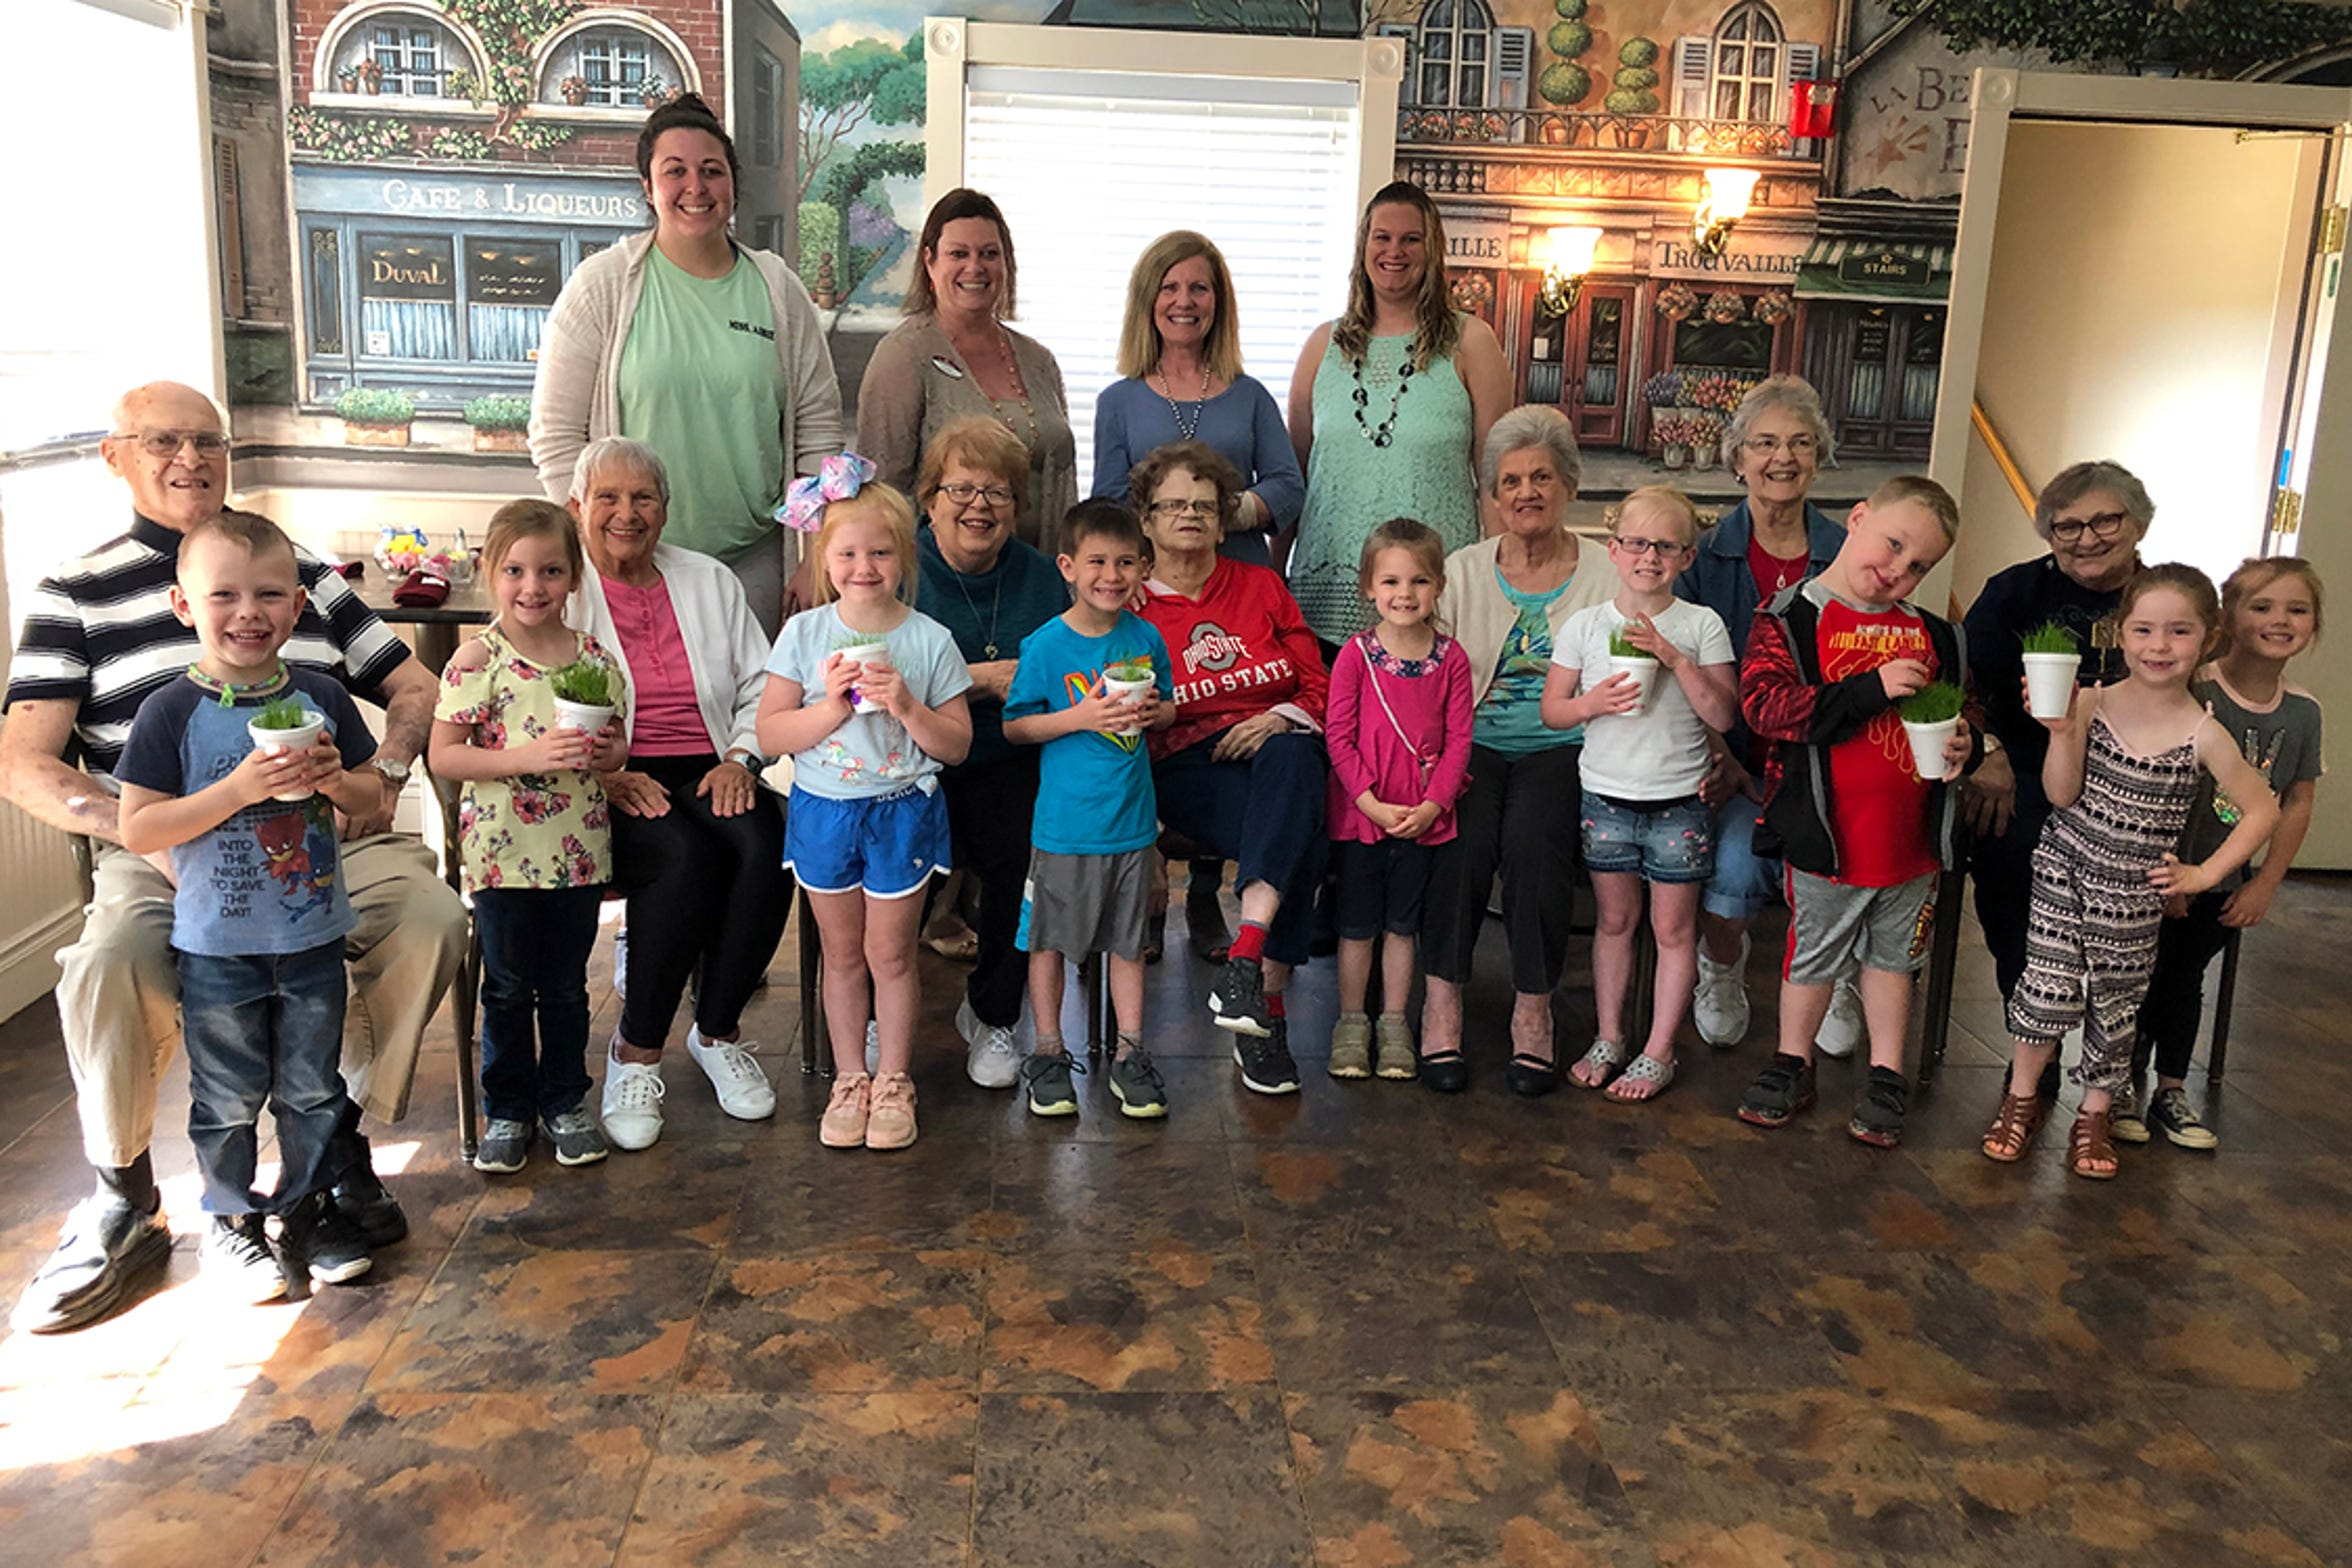 The smiles on the faces of the grandfriends and the children illustrate firsthand the impact that Timeless Wings has on their lives. The partnership between The Little Barnyard and Primrose Retirement Community is the fourth such program of Colleen Romito's vision. Those helping with the session on this day were, back row from left Abbie Keister, from The Little Barnyard, Cindy Clark, of Primrose, Colleen Romito and Kalynn Moorehead, of Primrose.